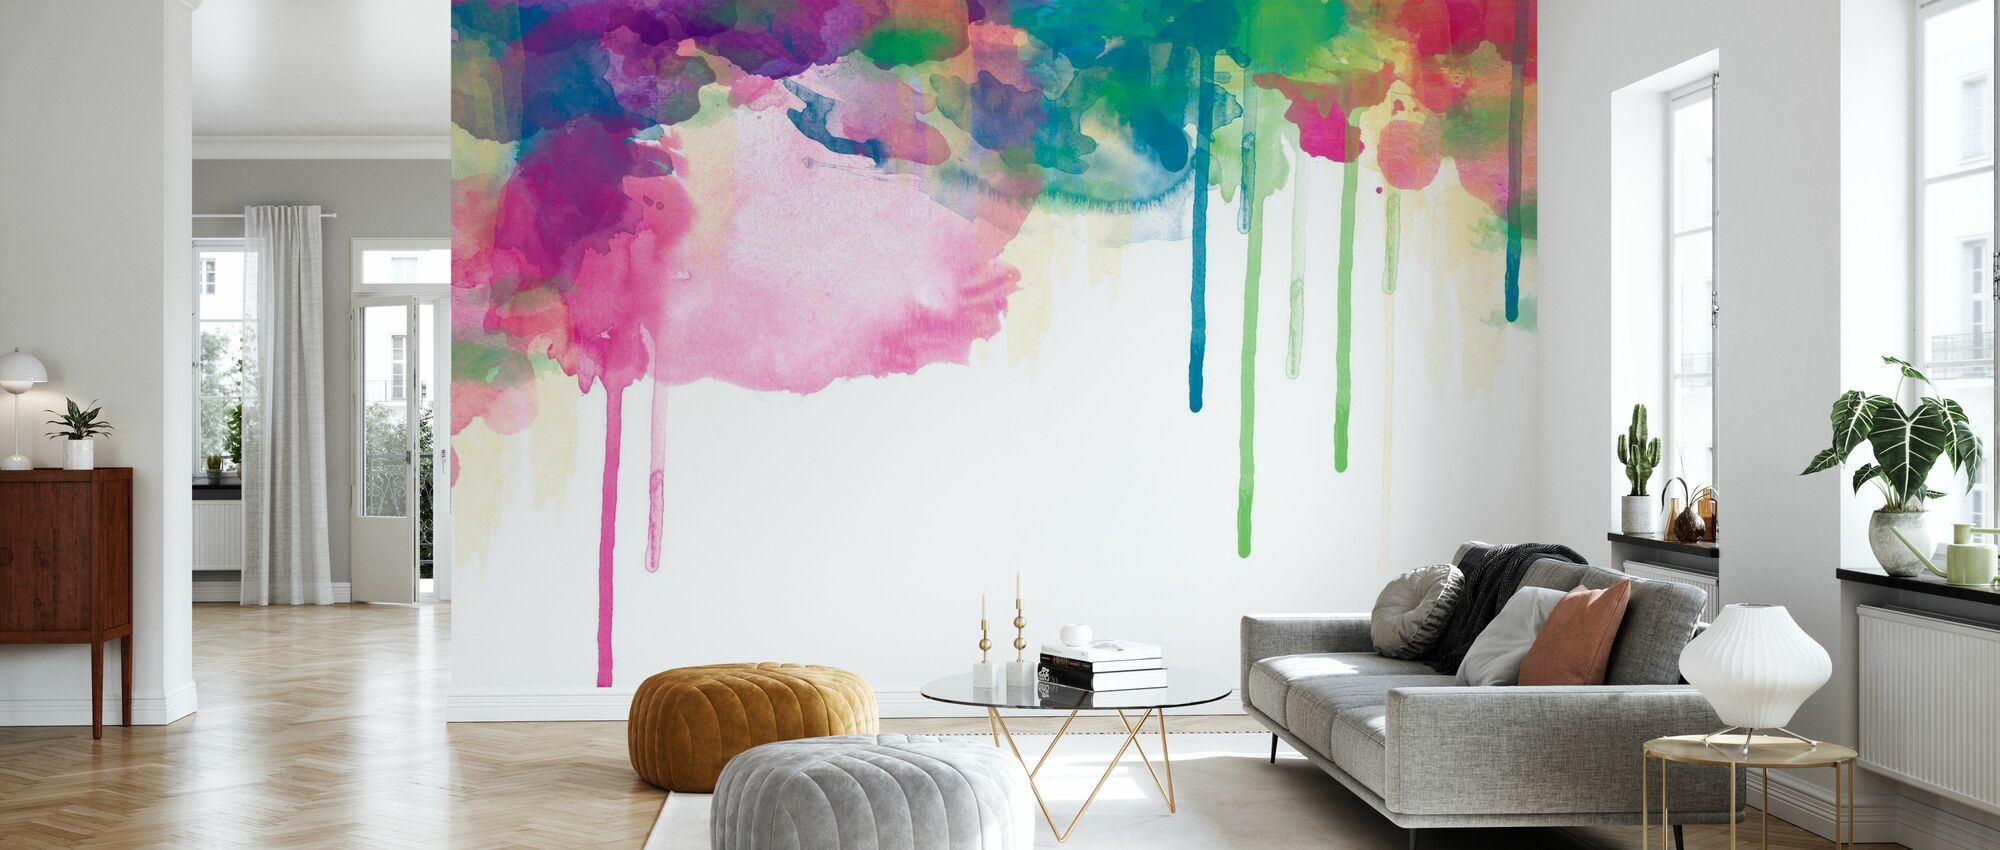 Colour Drips - Wallpaper - Living Room